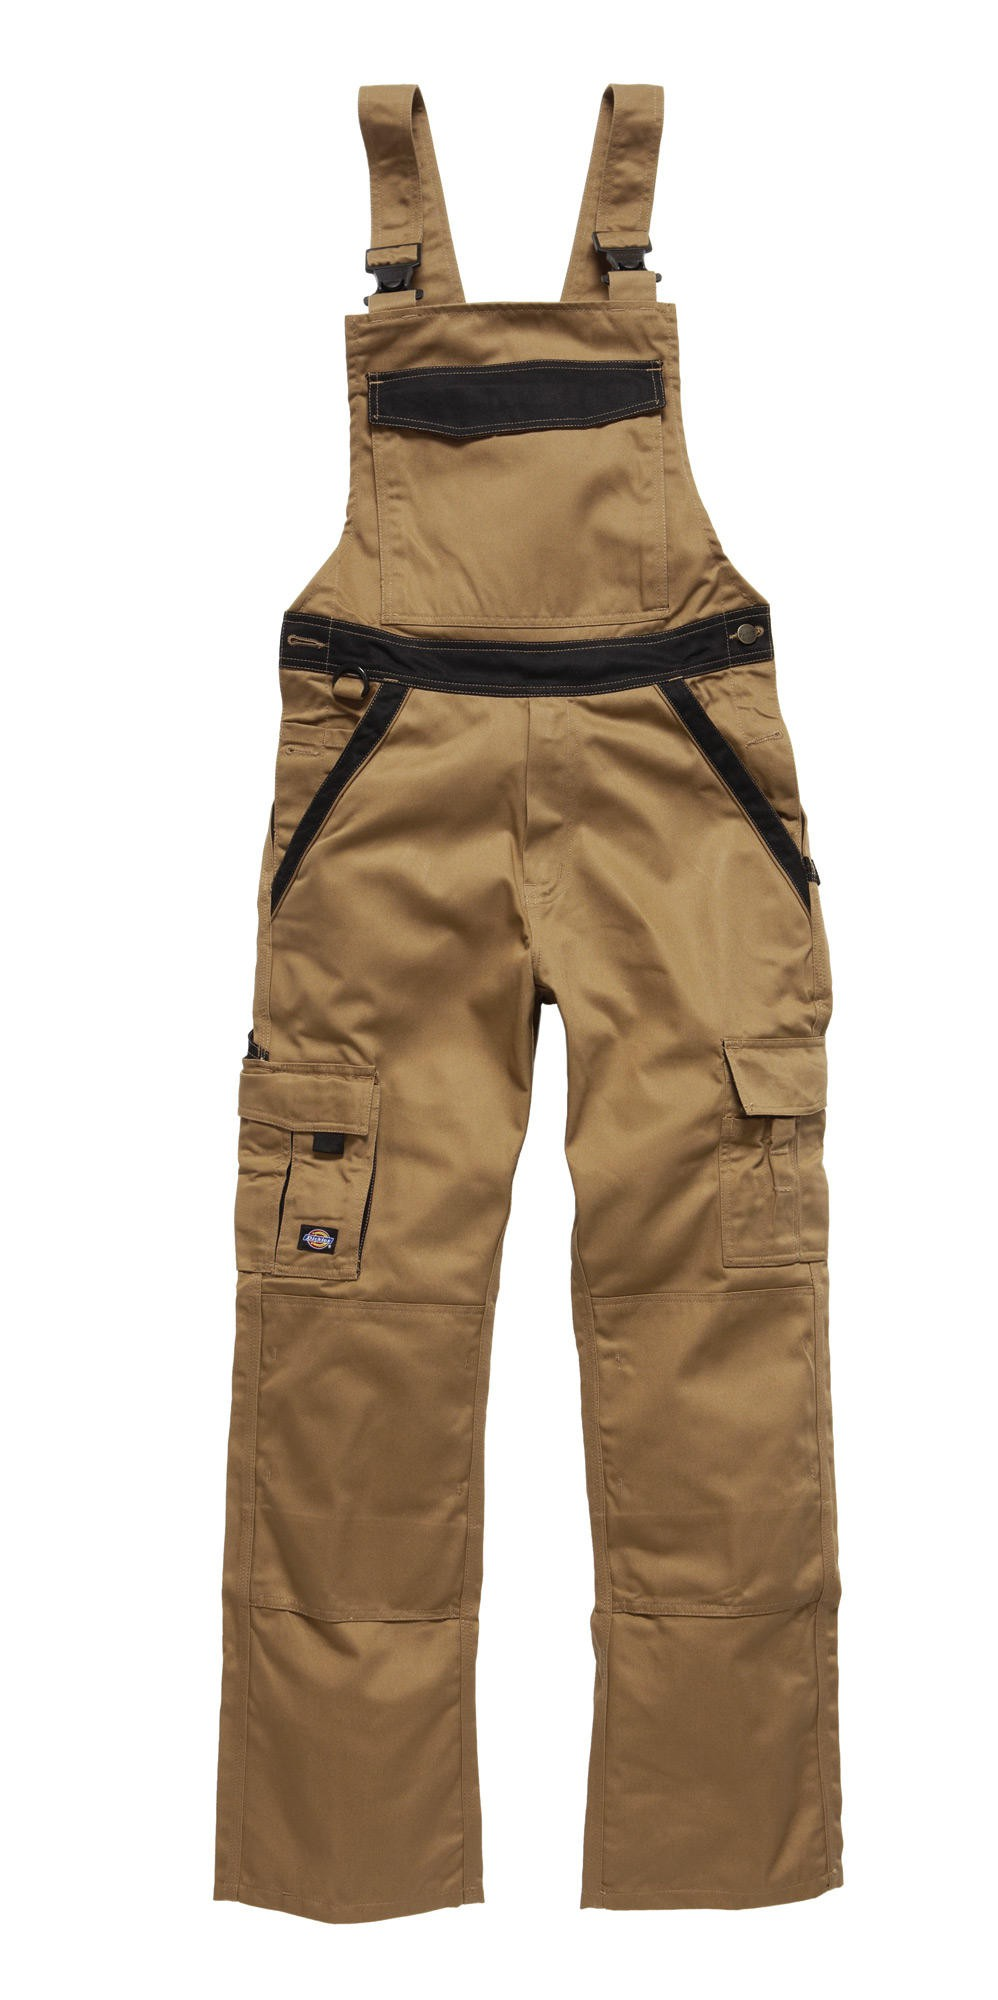 Dickies: Industry300 Bib&Brace Short IN30040S